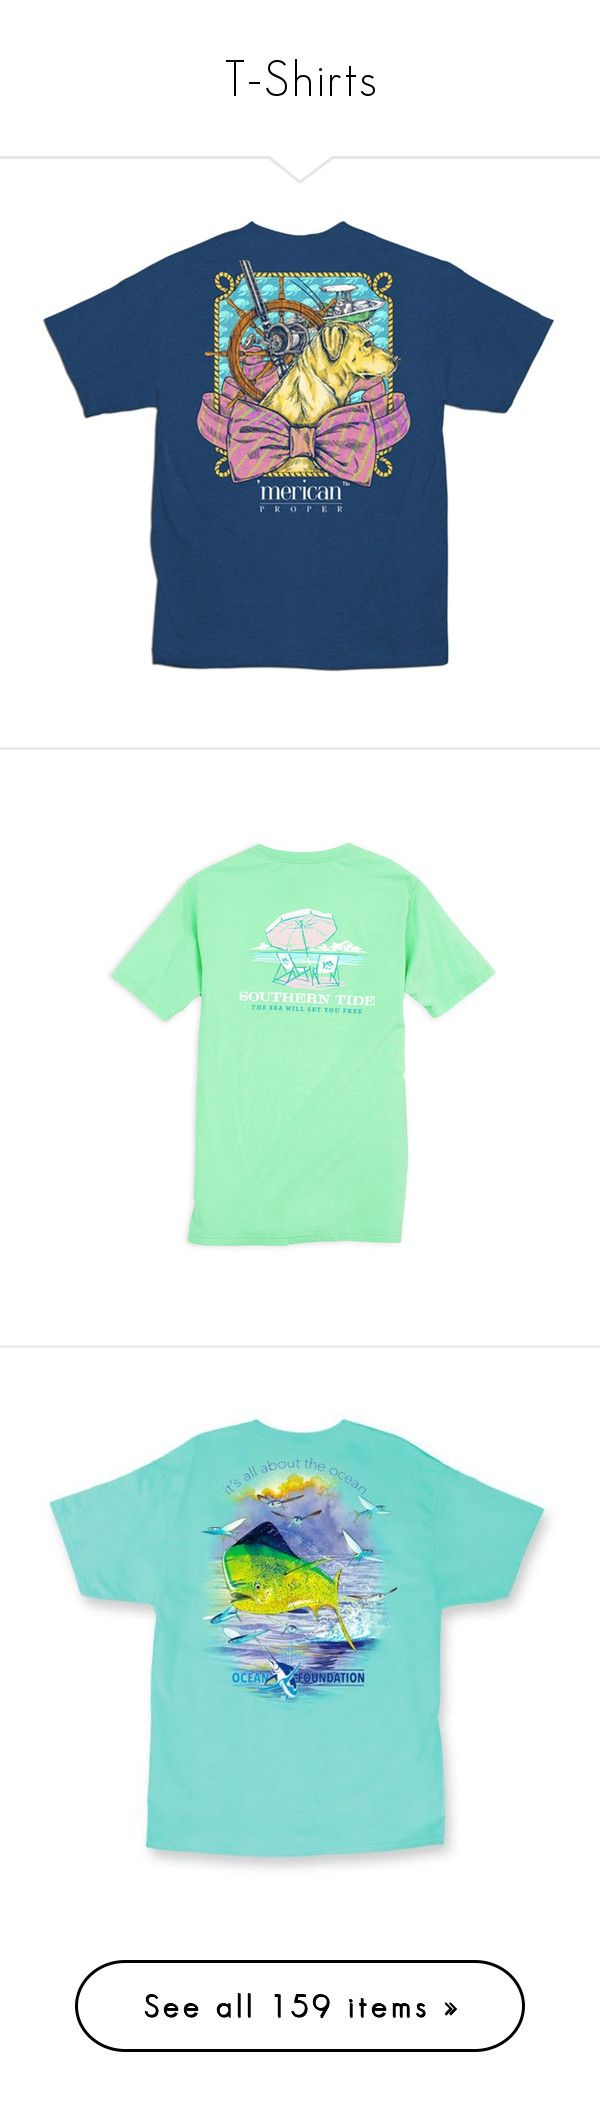 """""""T-Shirts"""" by bowhunter1498702 ❤ liked on Polyvore featuring men's fashion, men's clothing, men's shirts, men's t-shirts, mint, guy harvey mens shirts, mens graphic t shirts, mens cotton t shirts, mens short sleeve t shirts and mens short sleeve cotton shirts"""